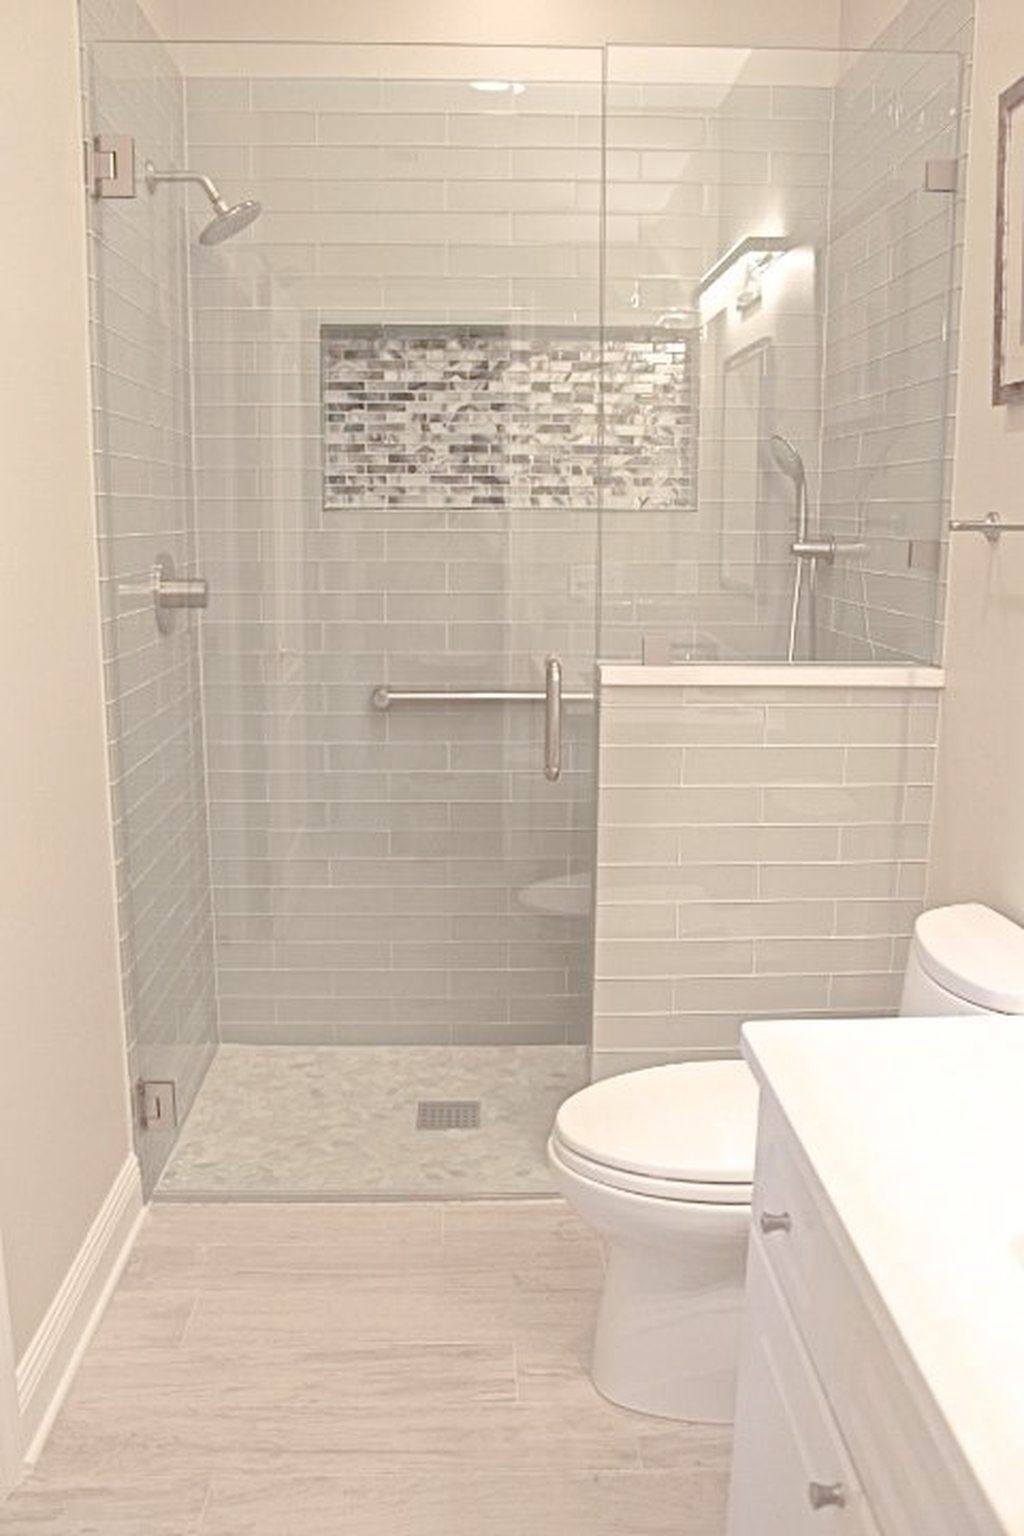 Bathroom Decor Earth Tones Bathroom Ideas Medium Master Bathroom Renovation Bathrooms Remodel Bathroom Remodel Shower